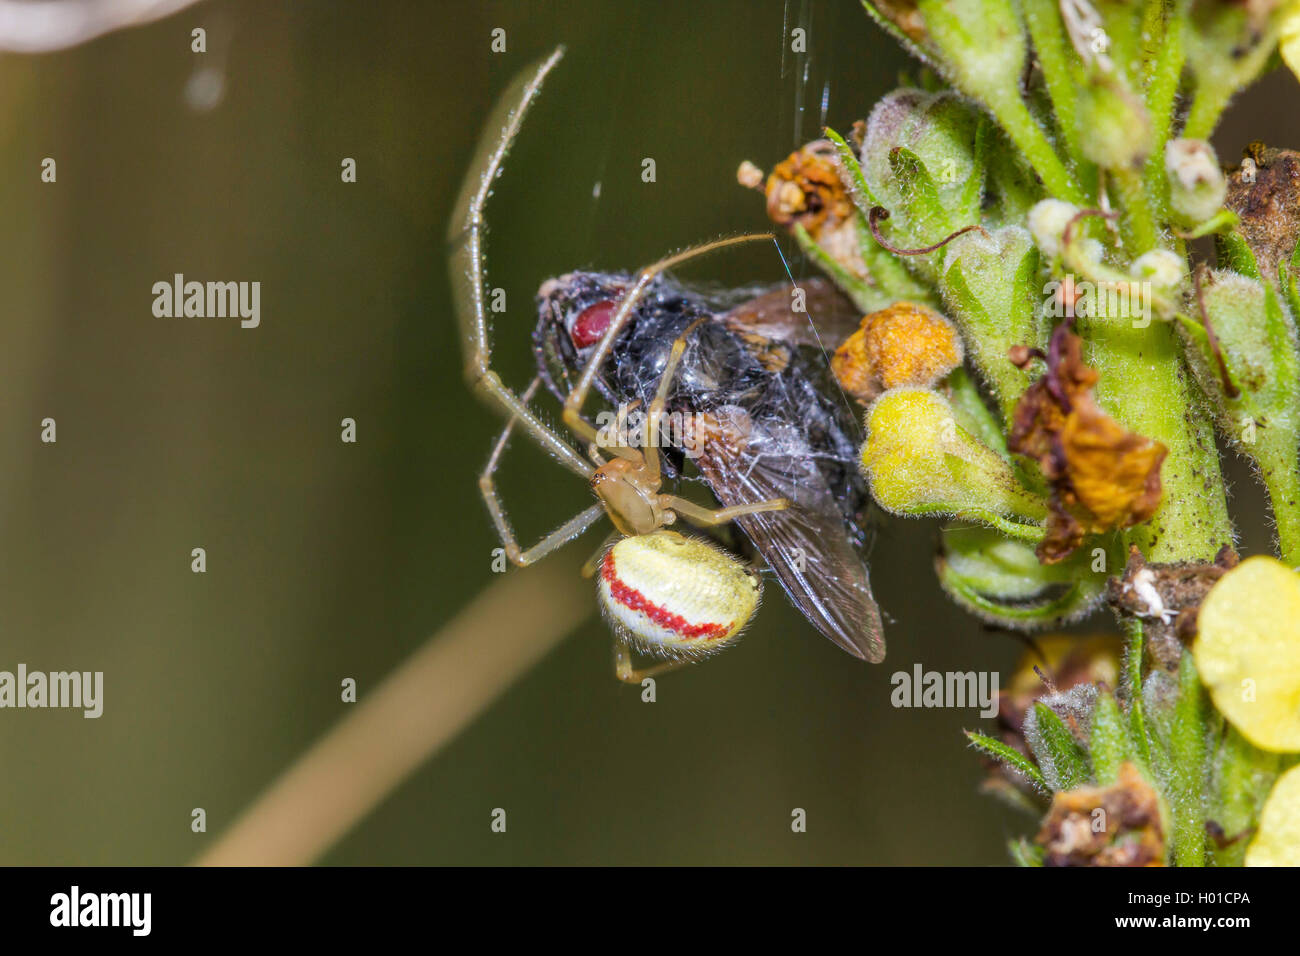 Rotweiss-Spinne, Rotweissspinne, Rotgestreifte Kugelspinne (Enoplognatha ovata, Enoplognatha lineata, Theridion - Stock Image